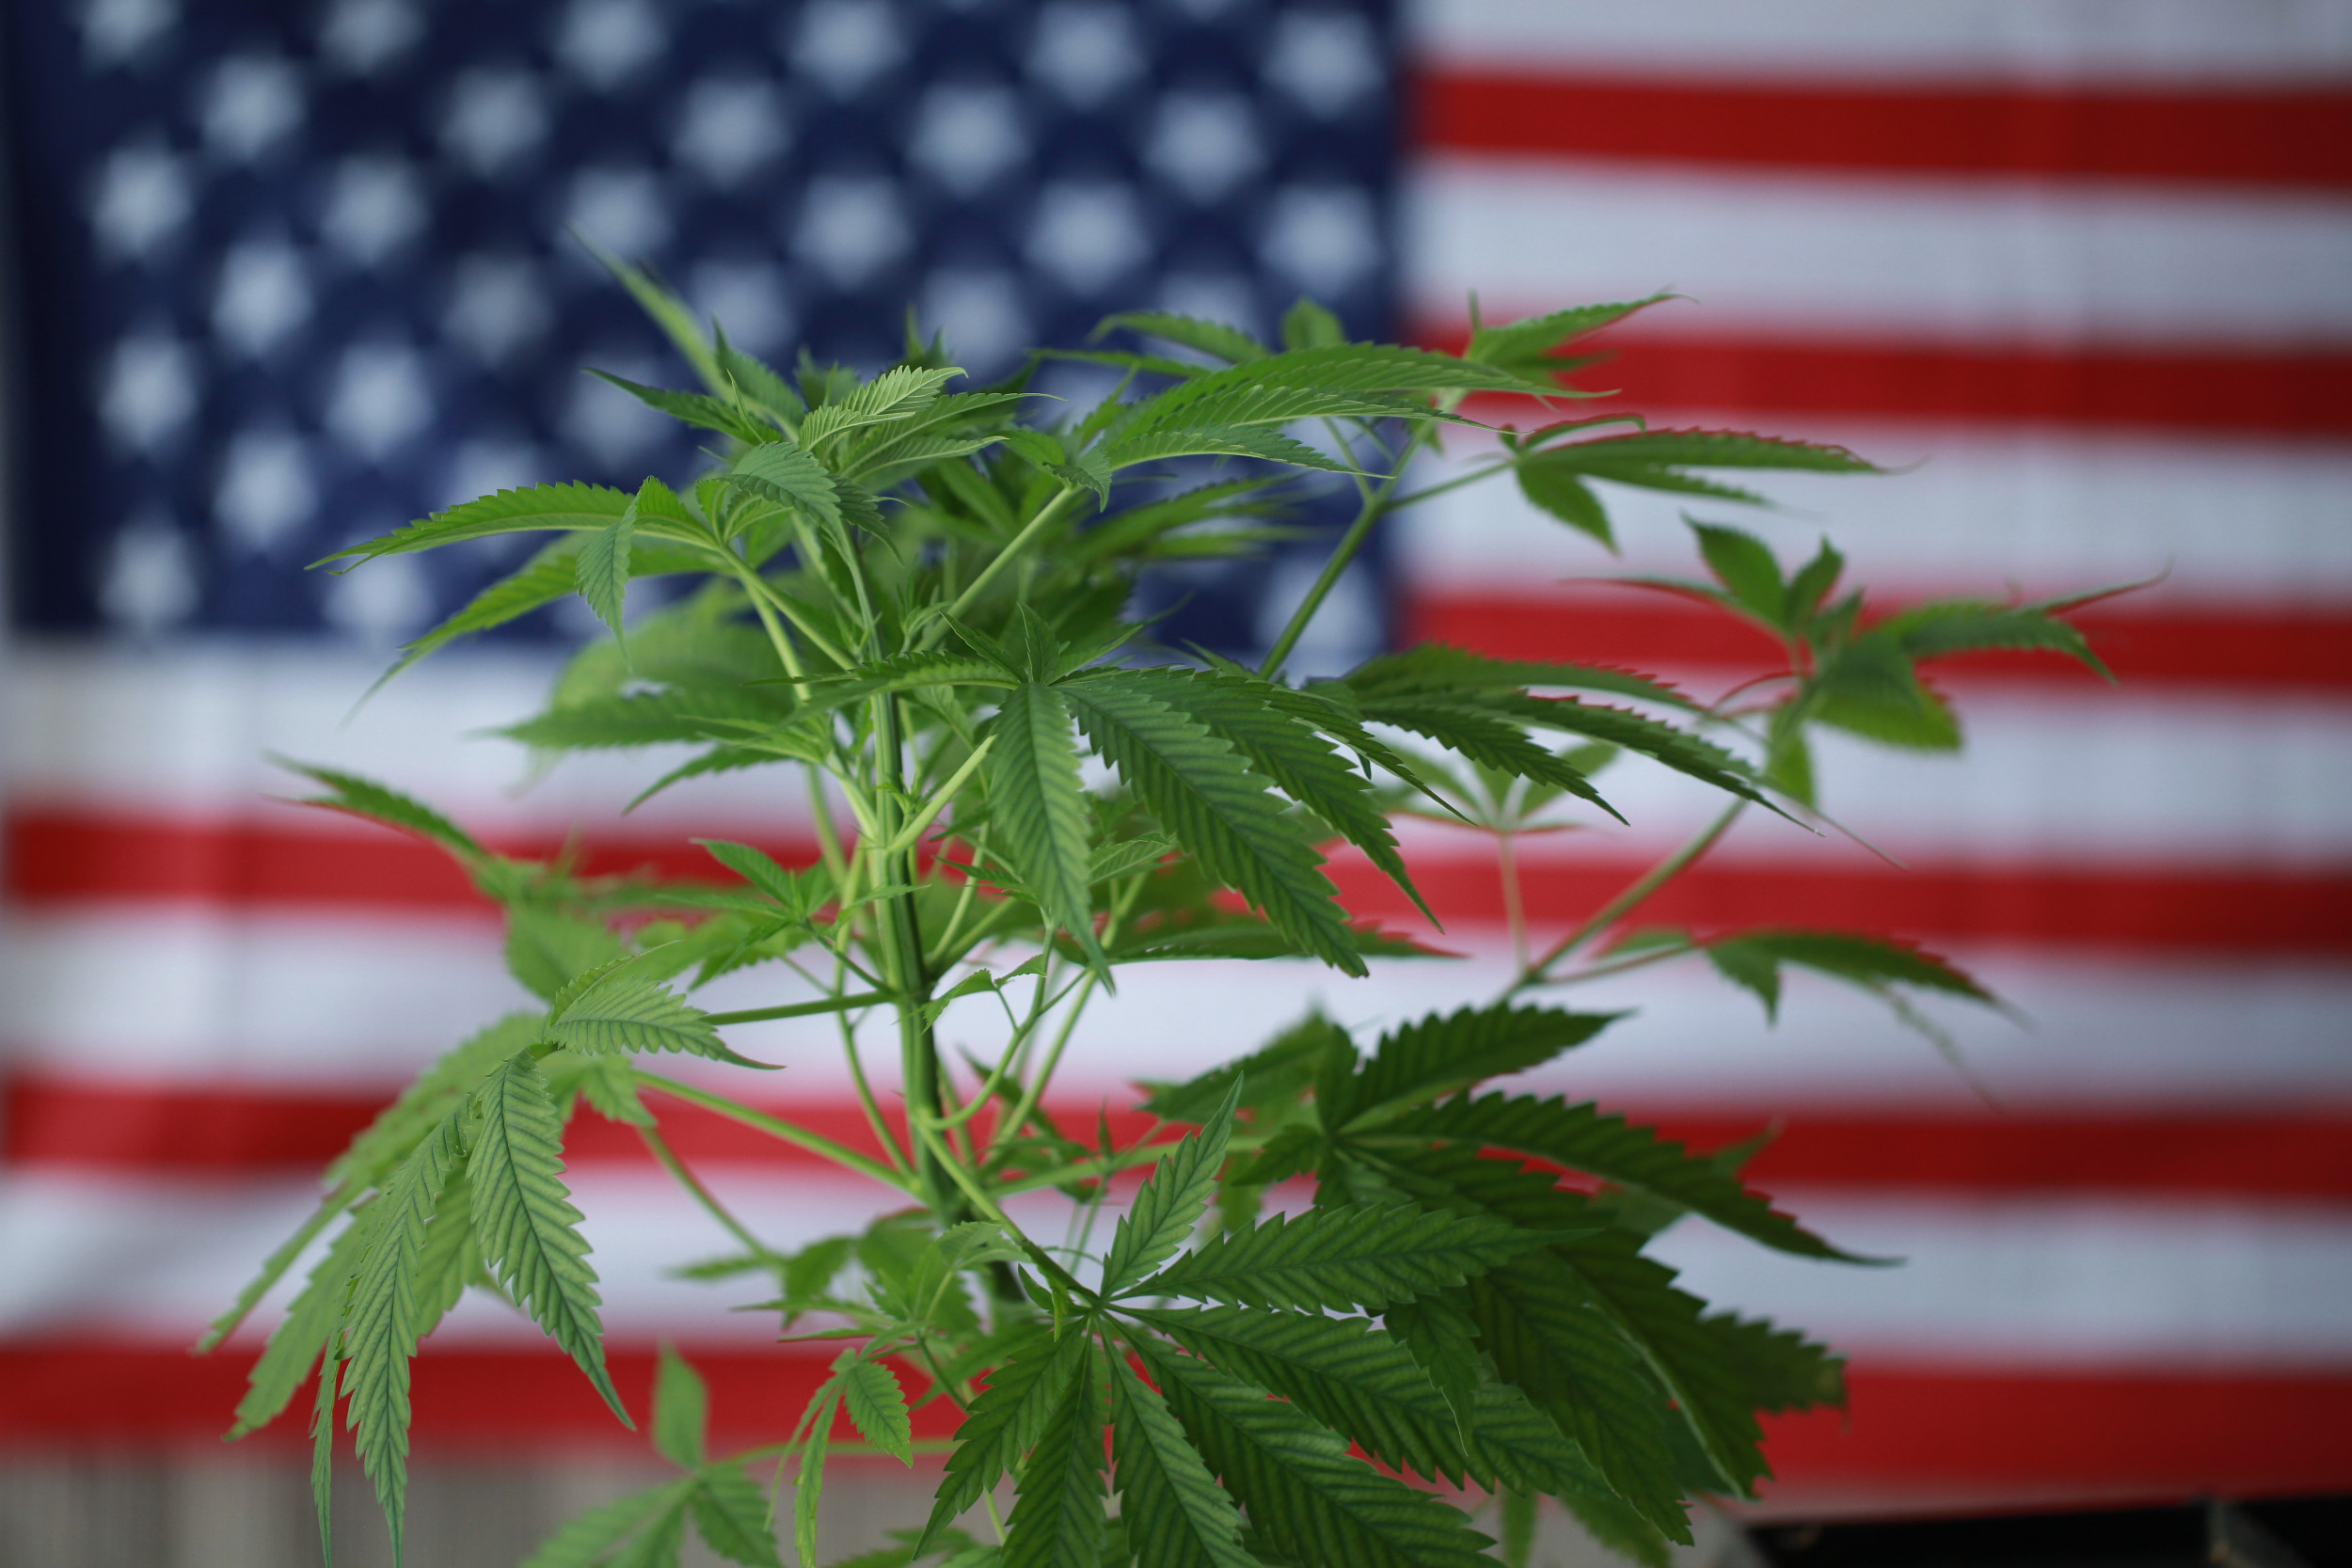 91 Percent of Americans Support Legalized Marijuana as Dems Push For Reform